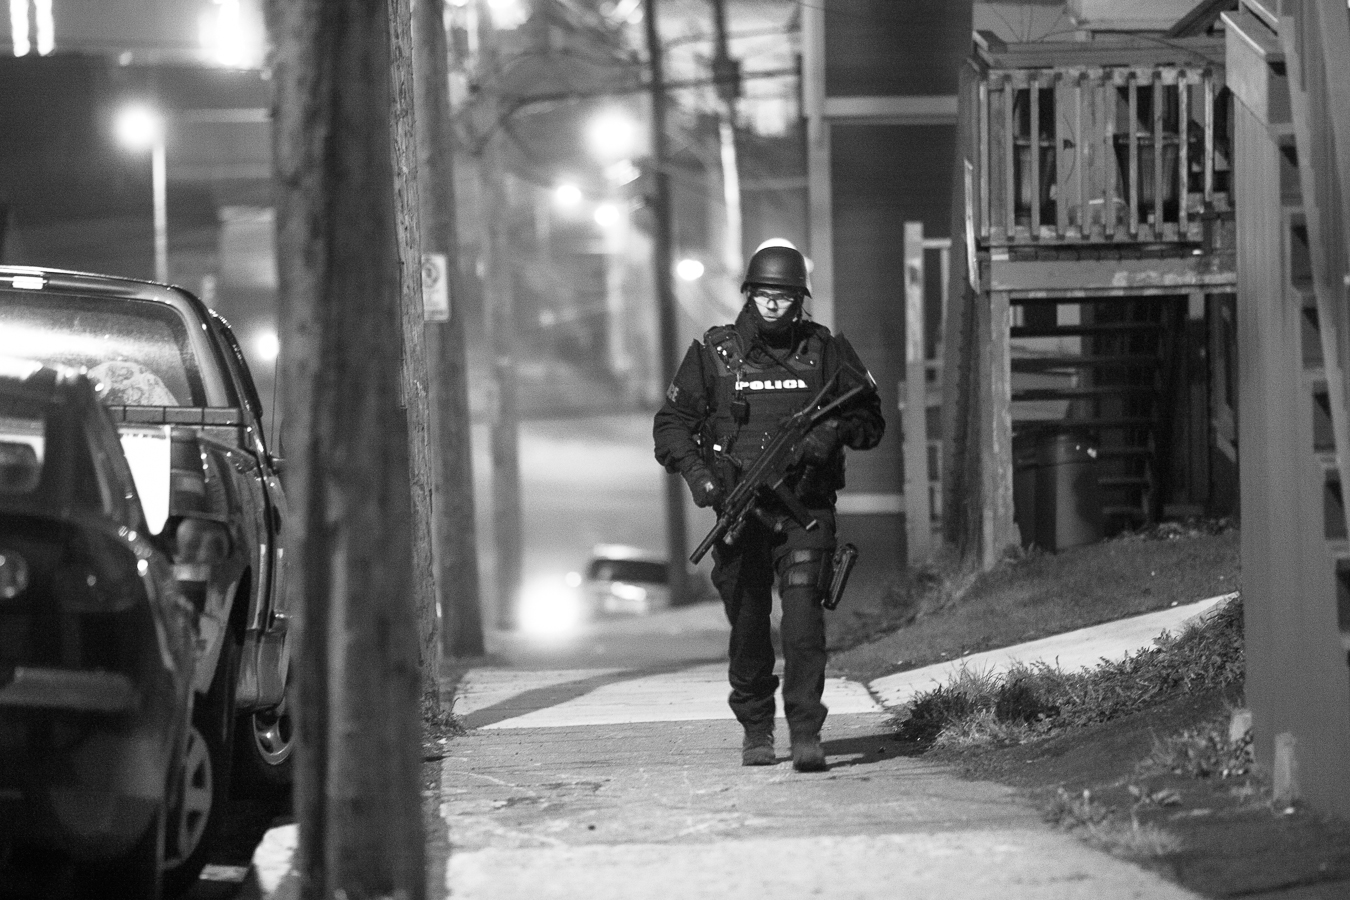 The scene of an armed standoff in the early morning hours of May12, 2013 - Springdale Street